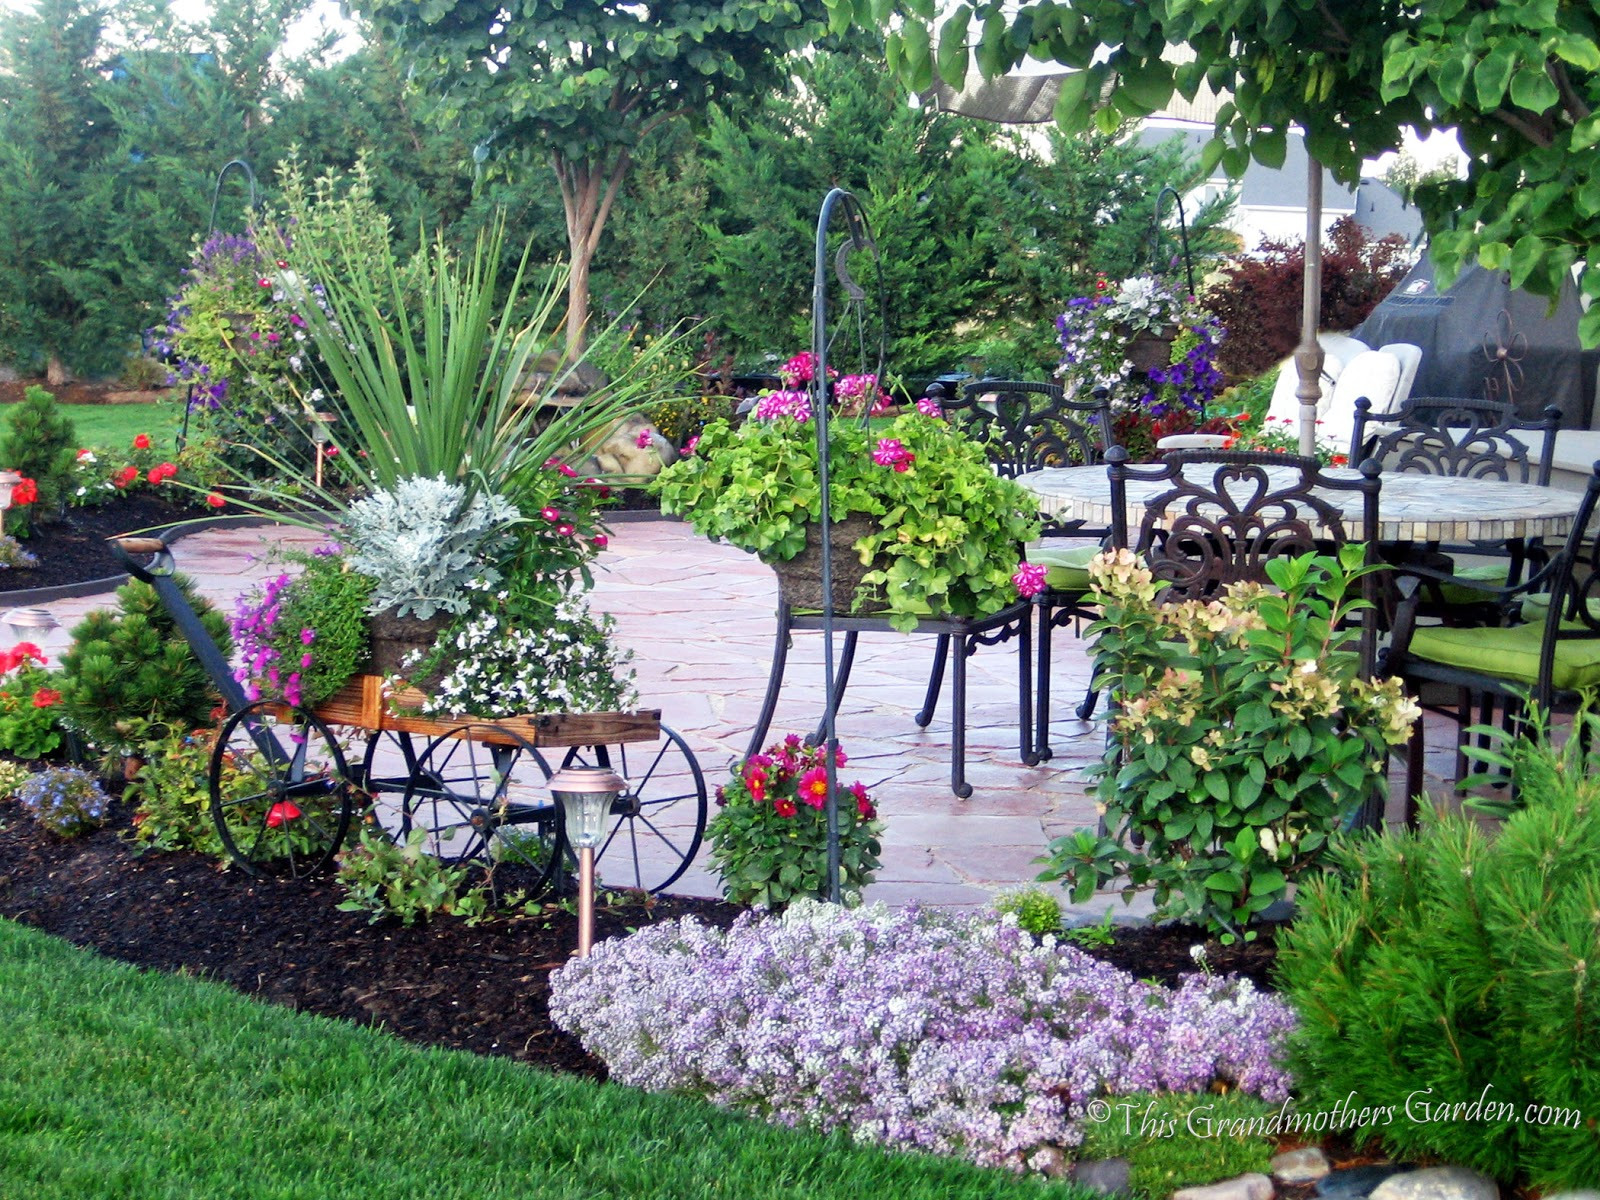 This Grandmother's Garden: DIY Flagstone Patio